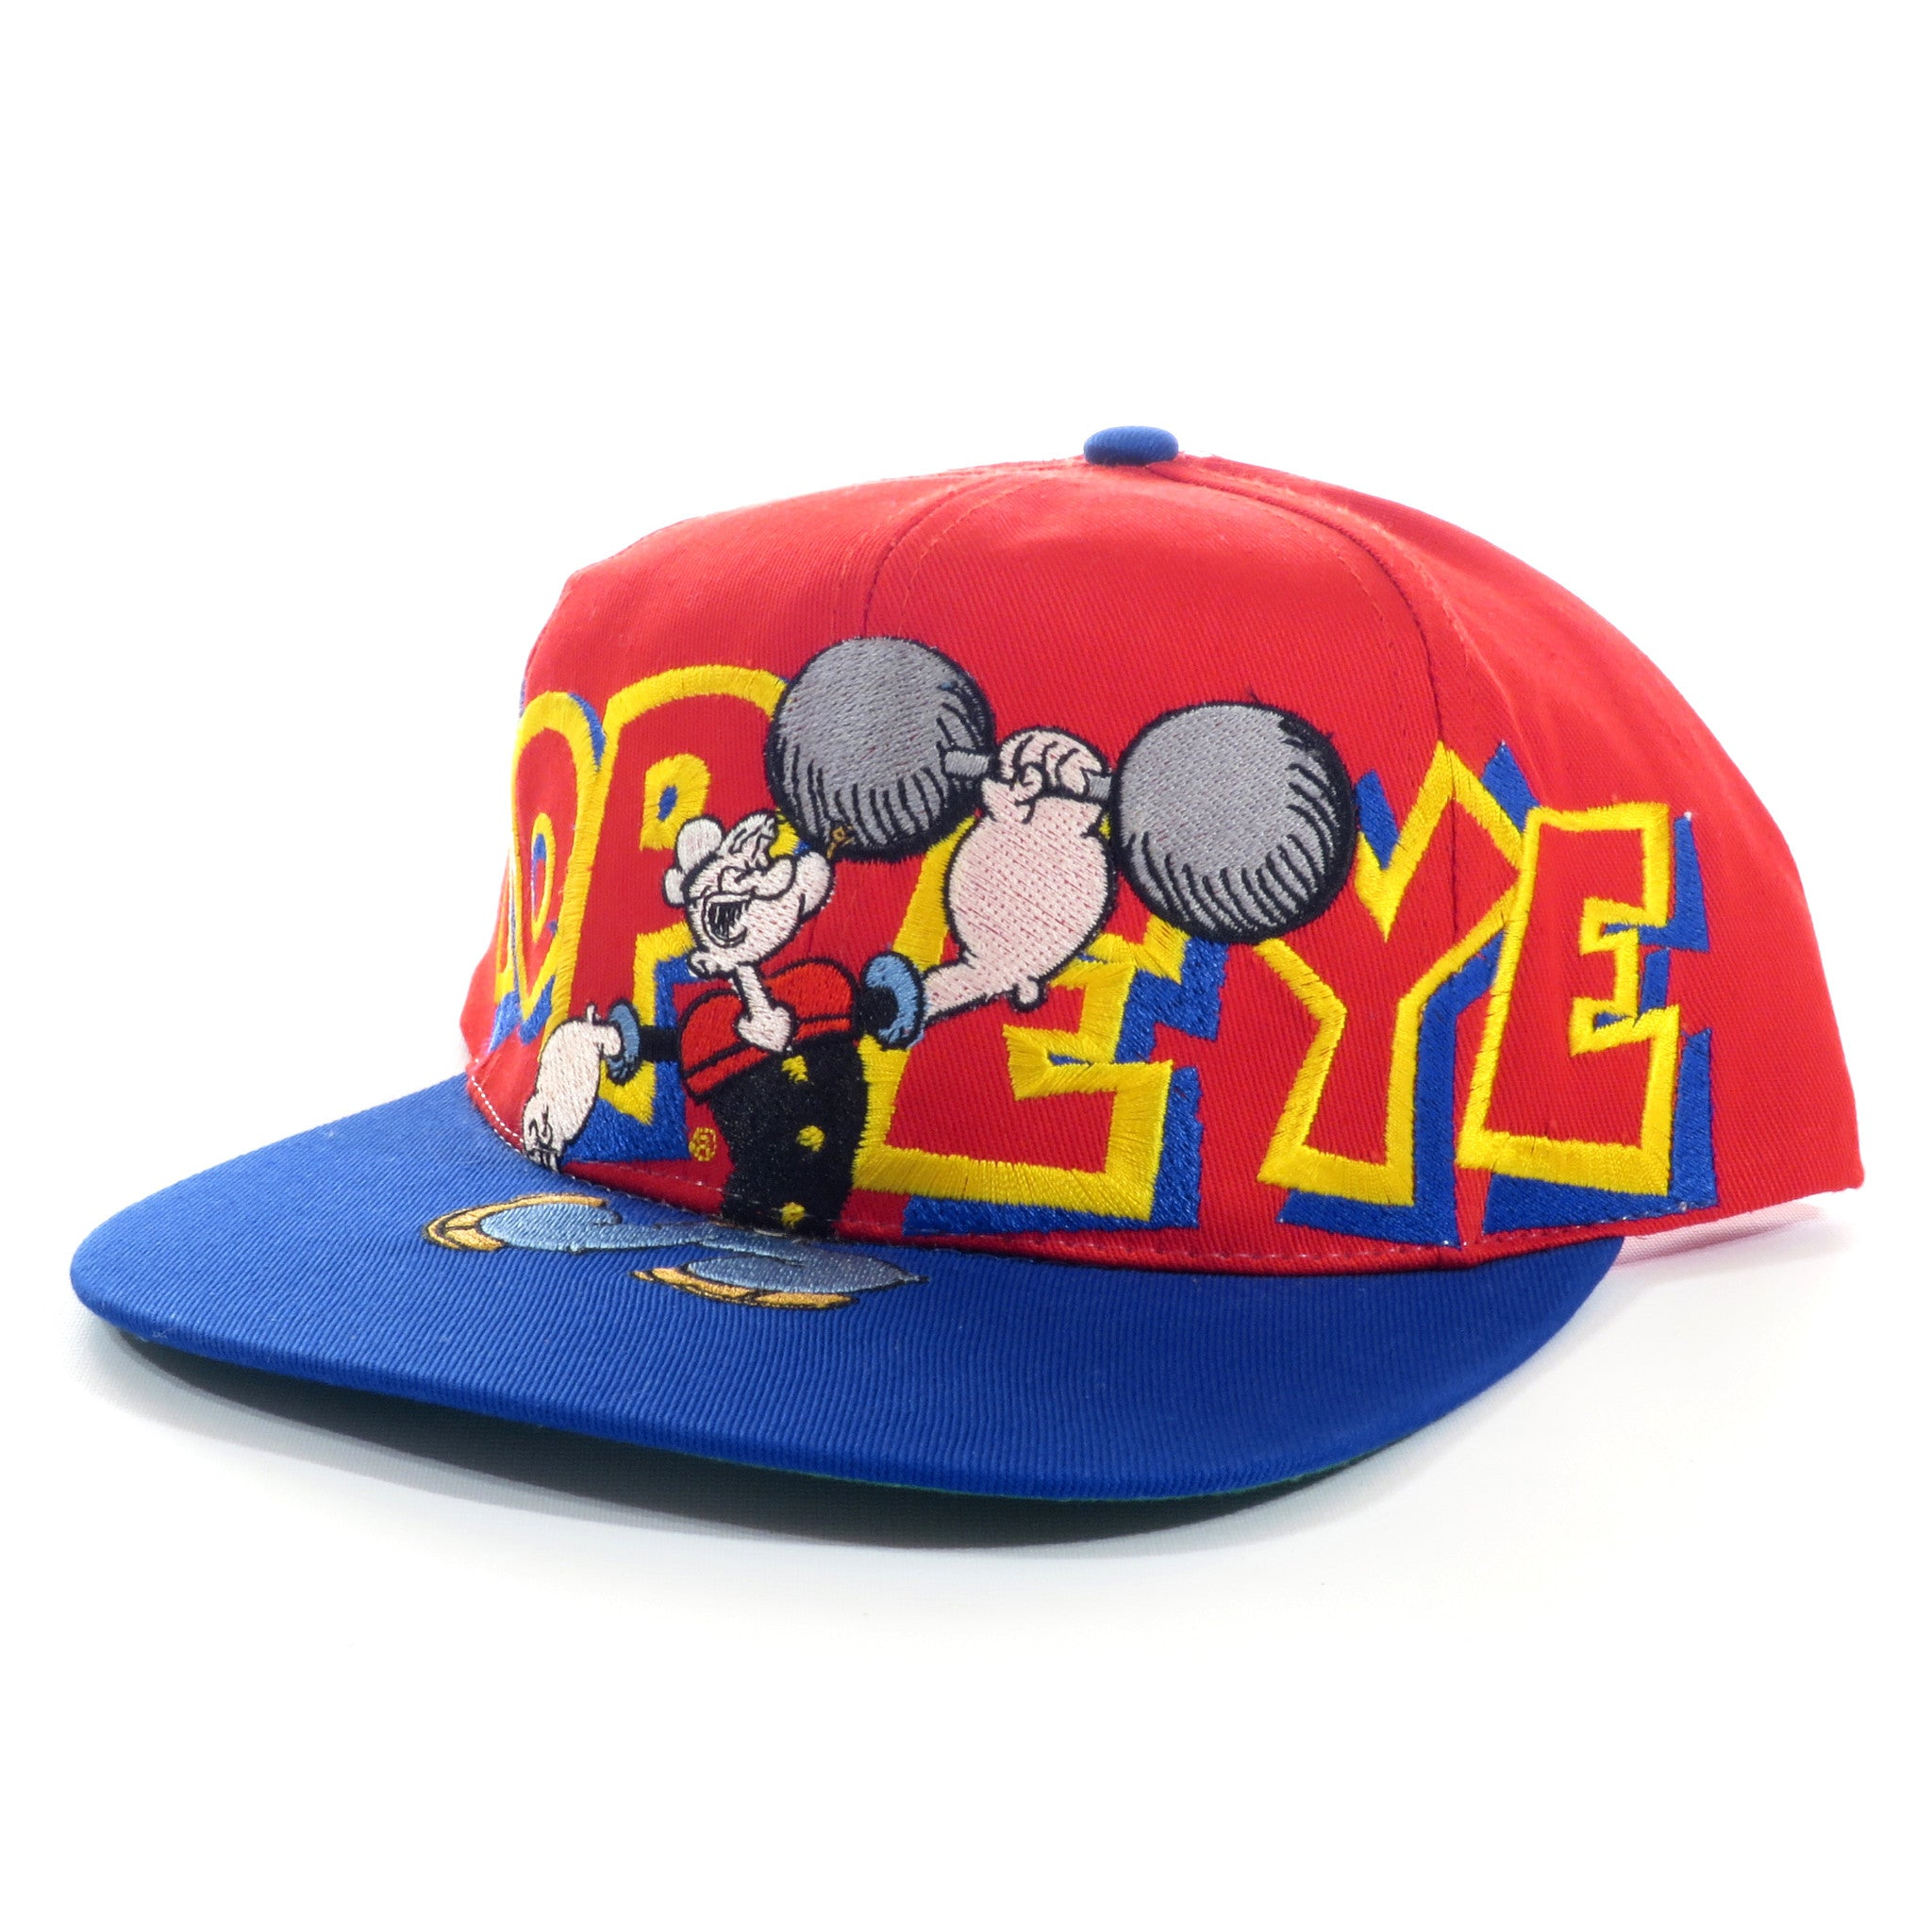 Popeye The Sailor Man Snapback Hat